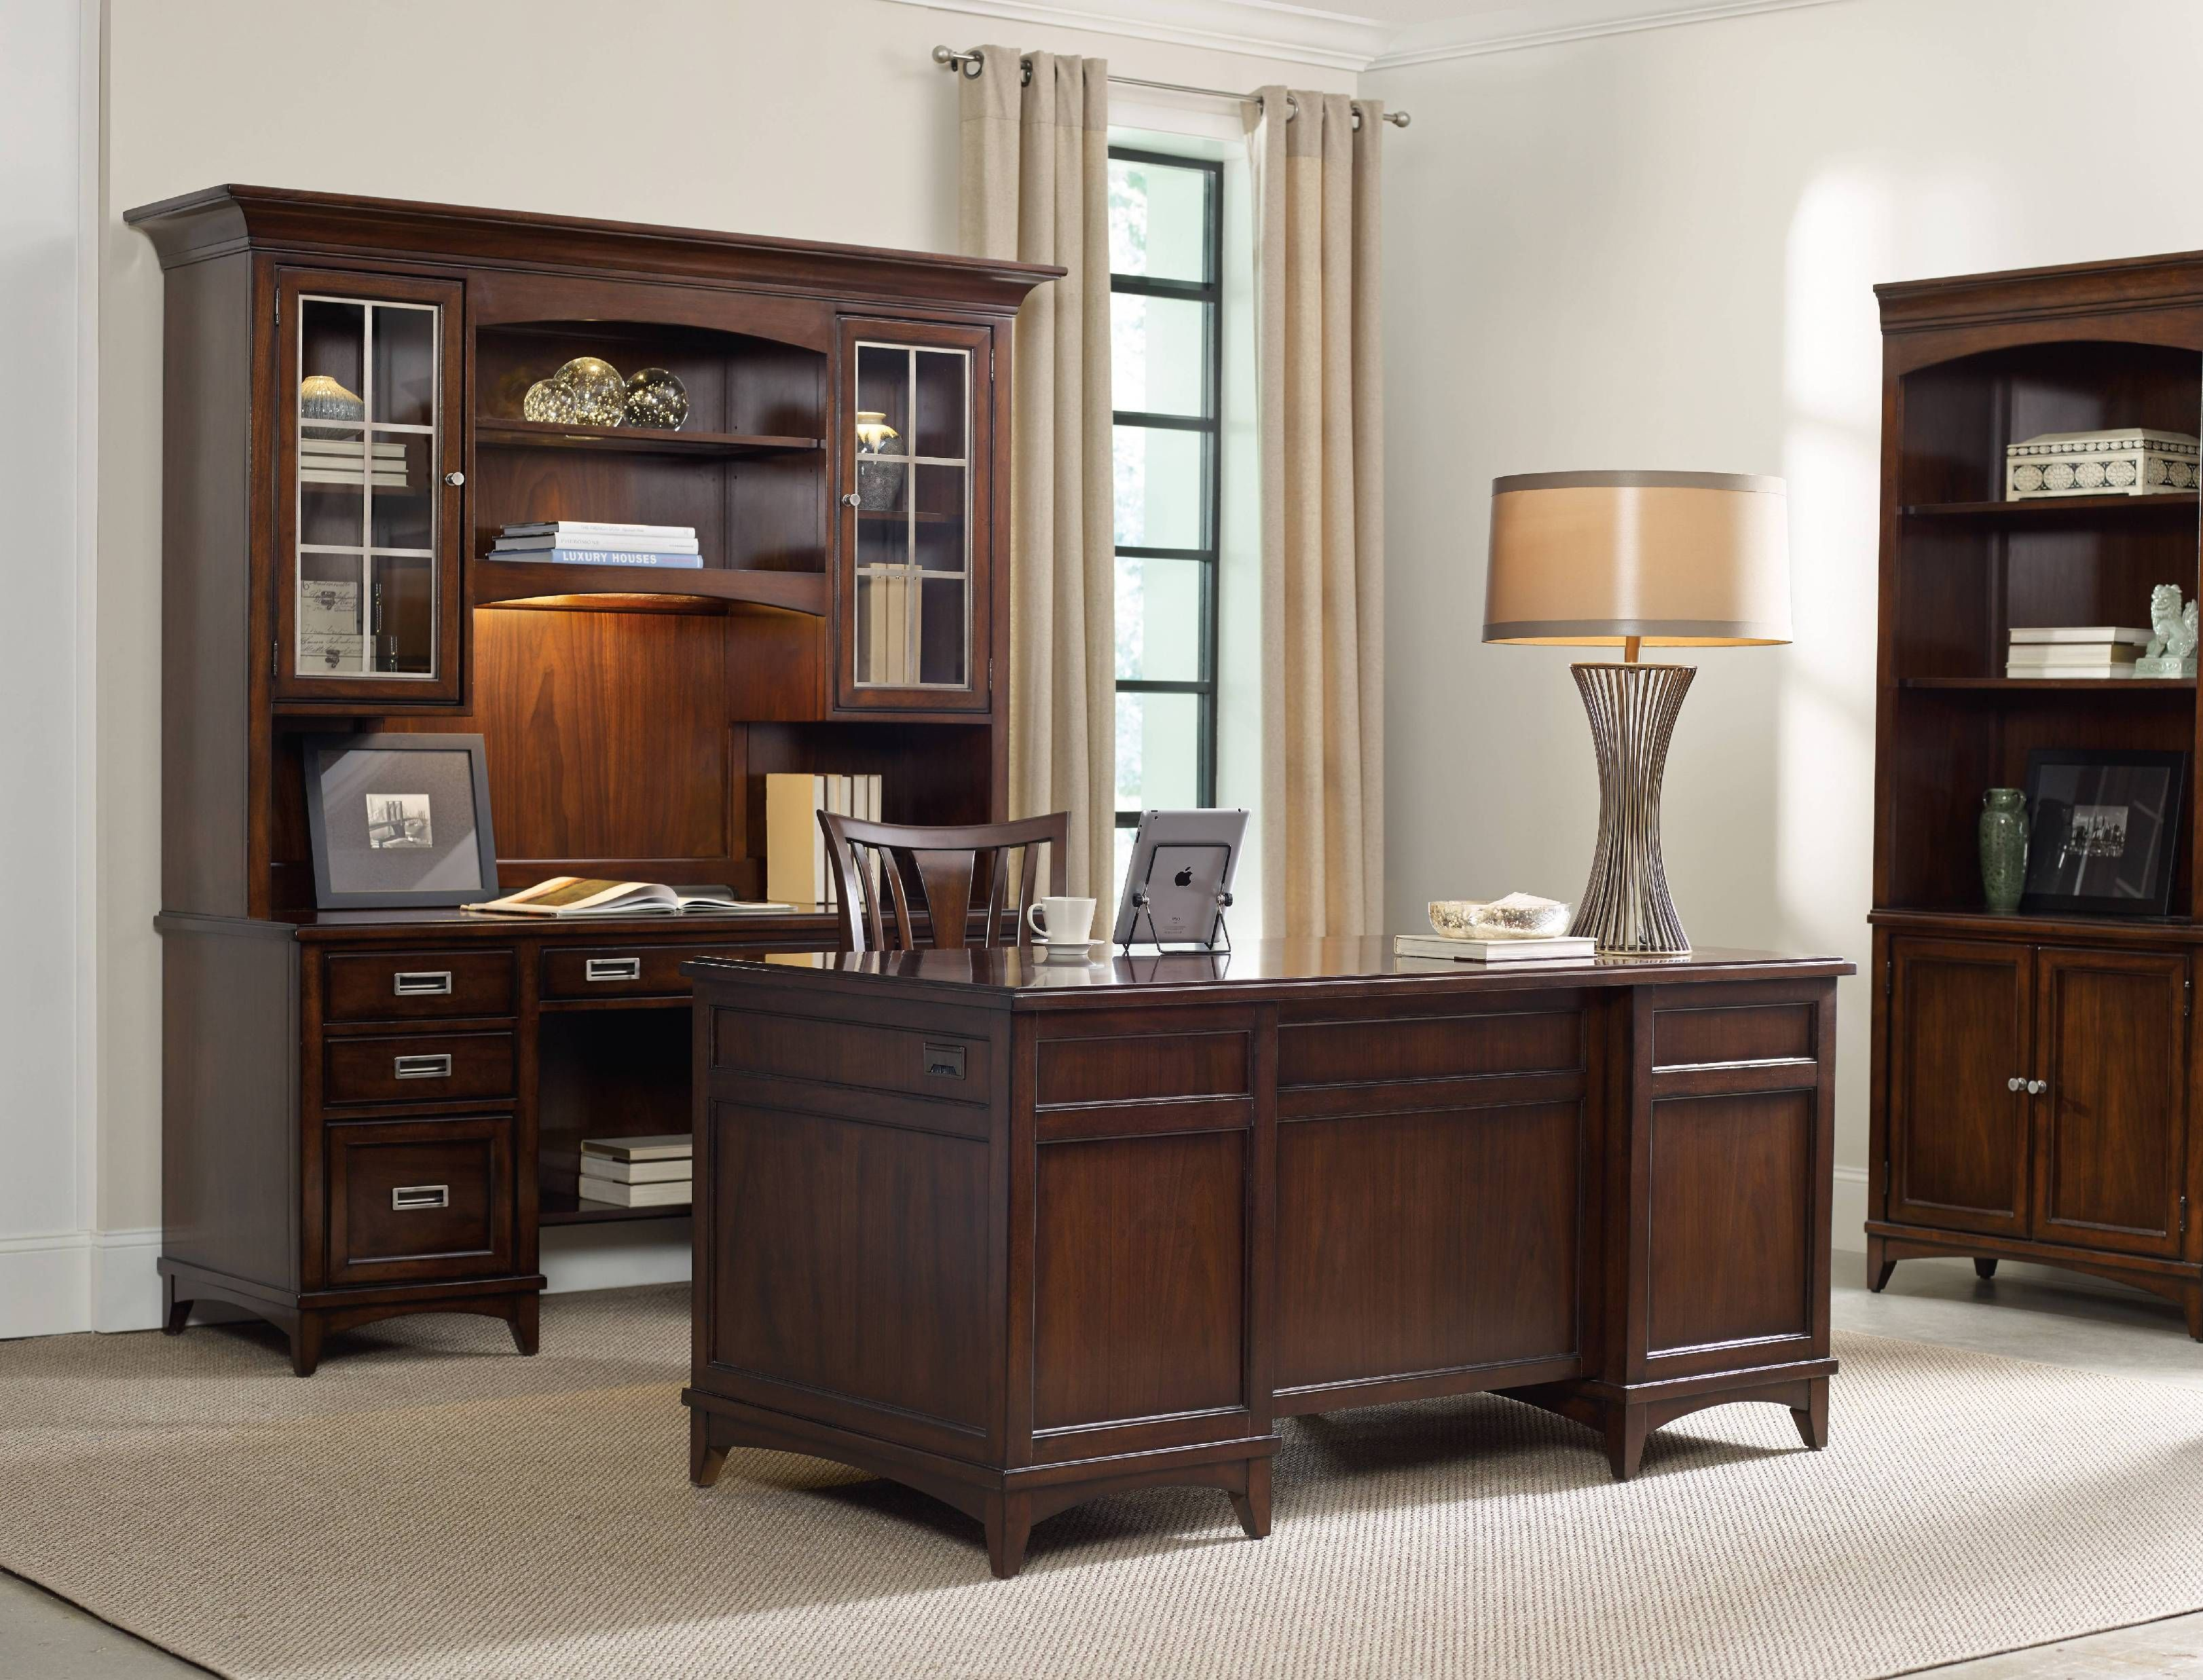 Hooker Furniture Home Office New Hooker Furniture Home Office Latitude Executive Desk 516710562 . Design Inspiration